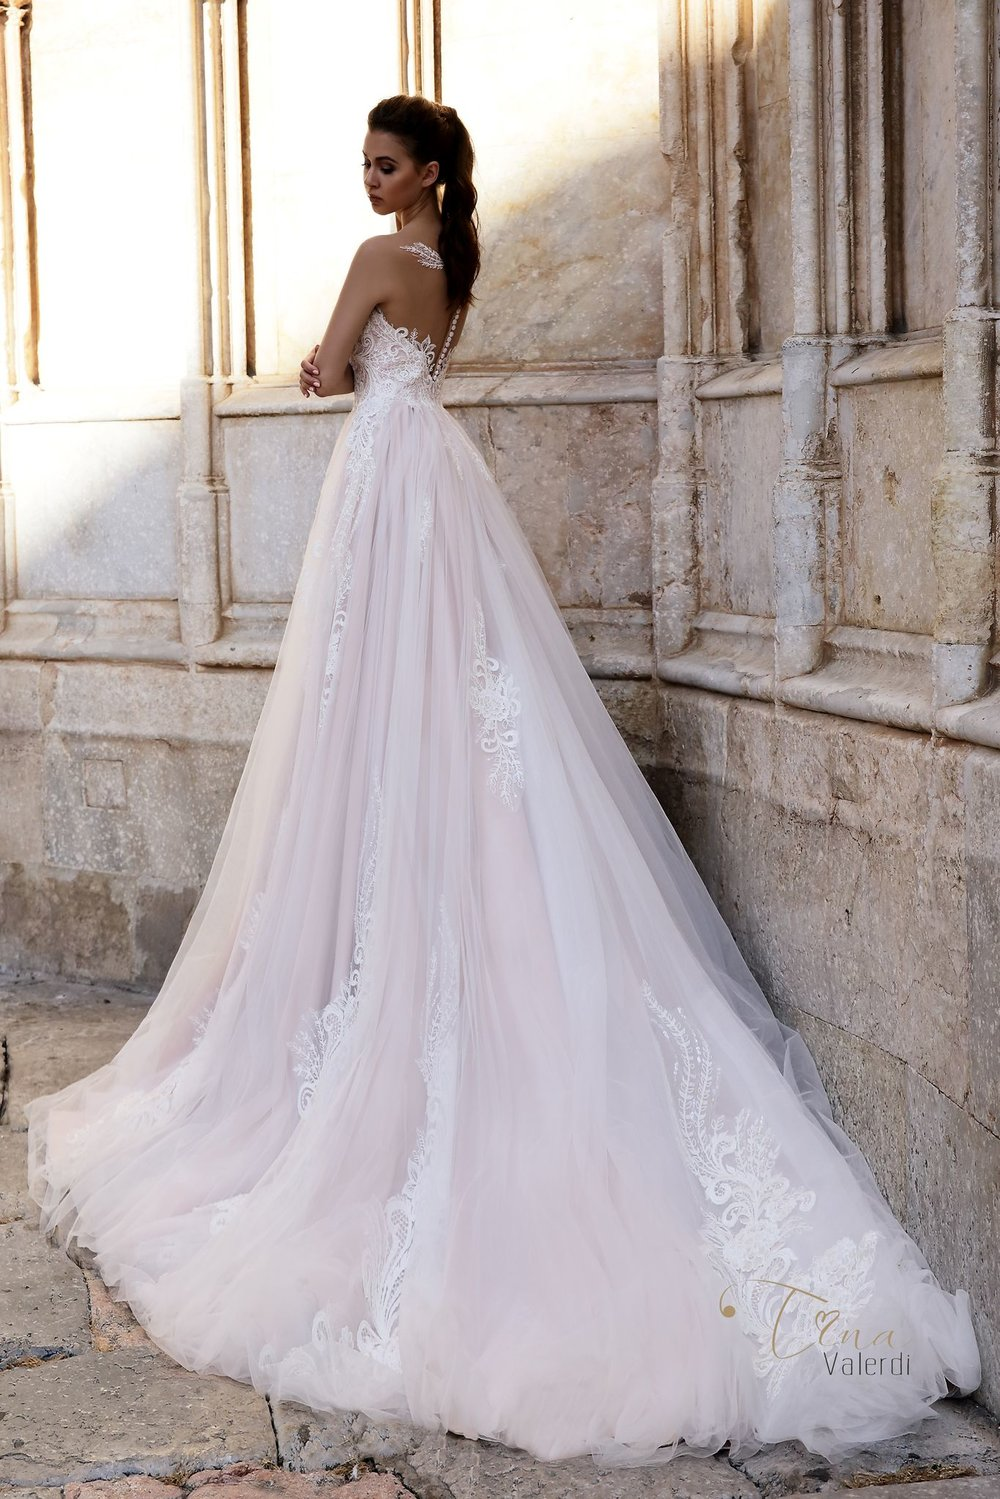 ELISA Wedding Dress by TINA VALERDI